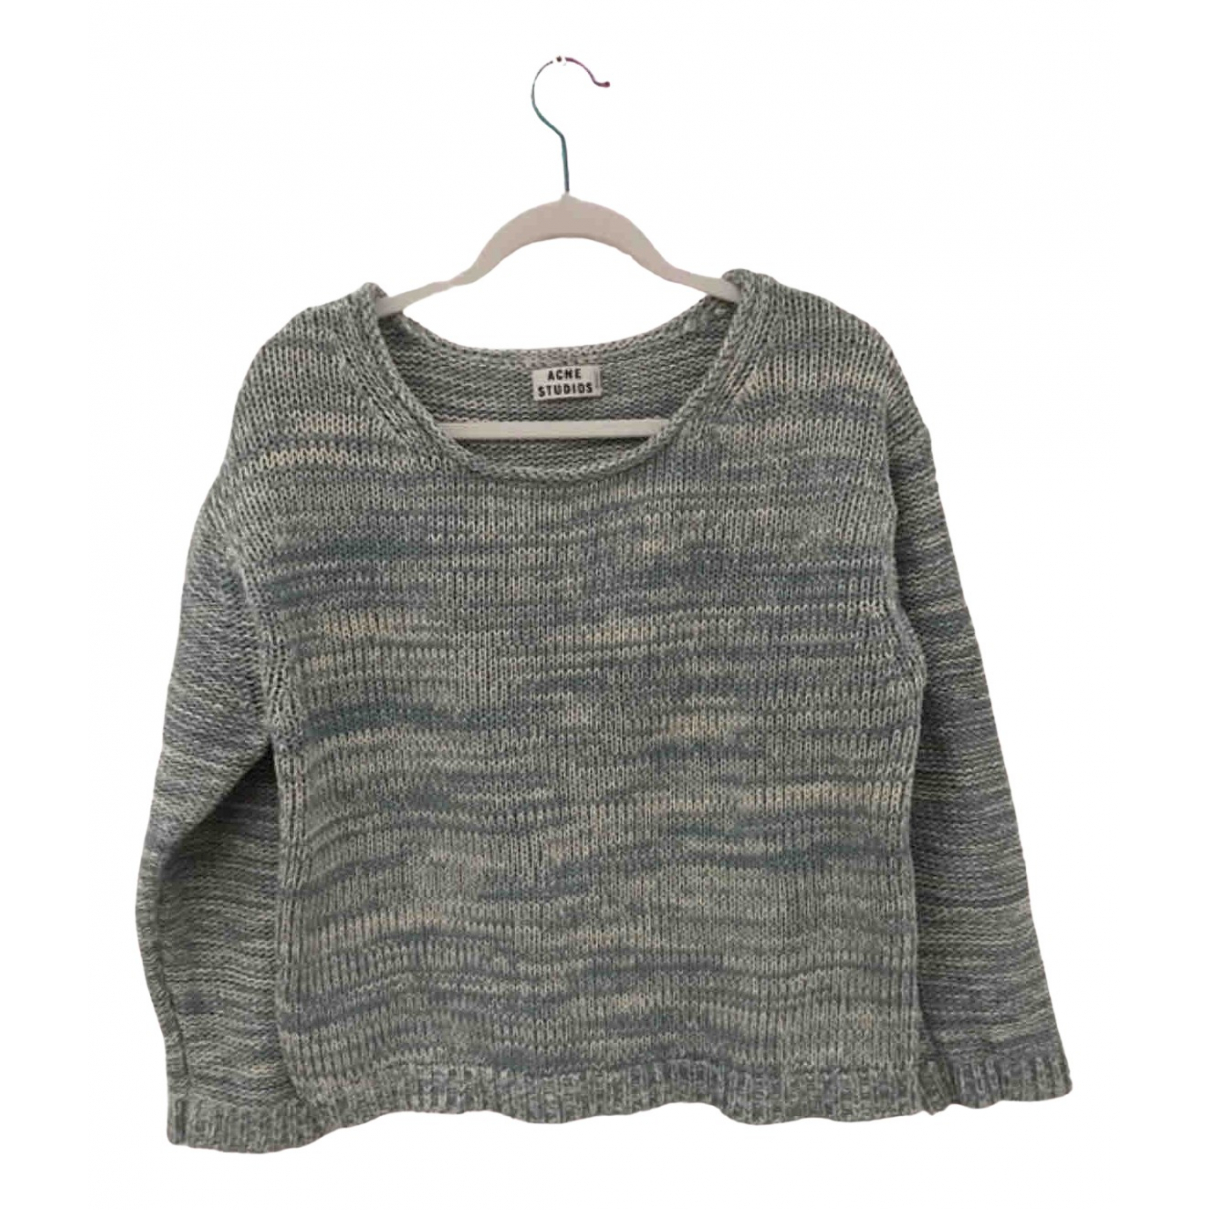 Acne Studios N Blue Cotton Knitwear for Women M International